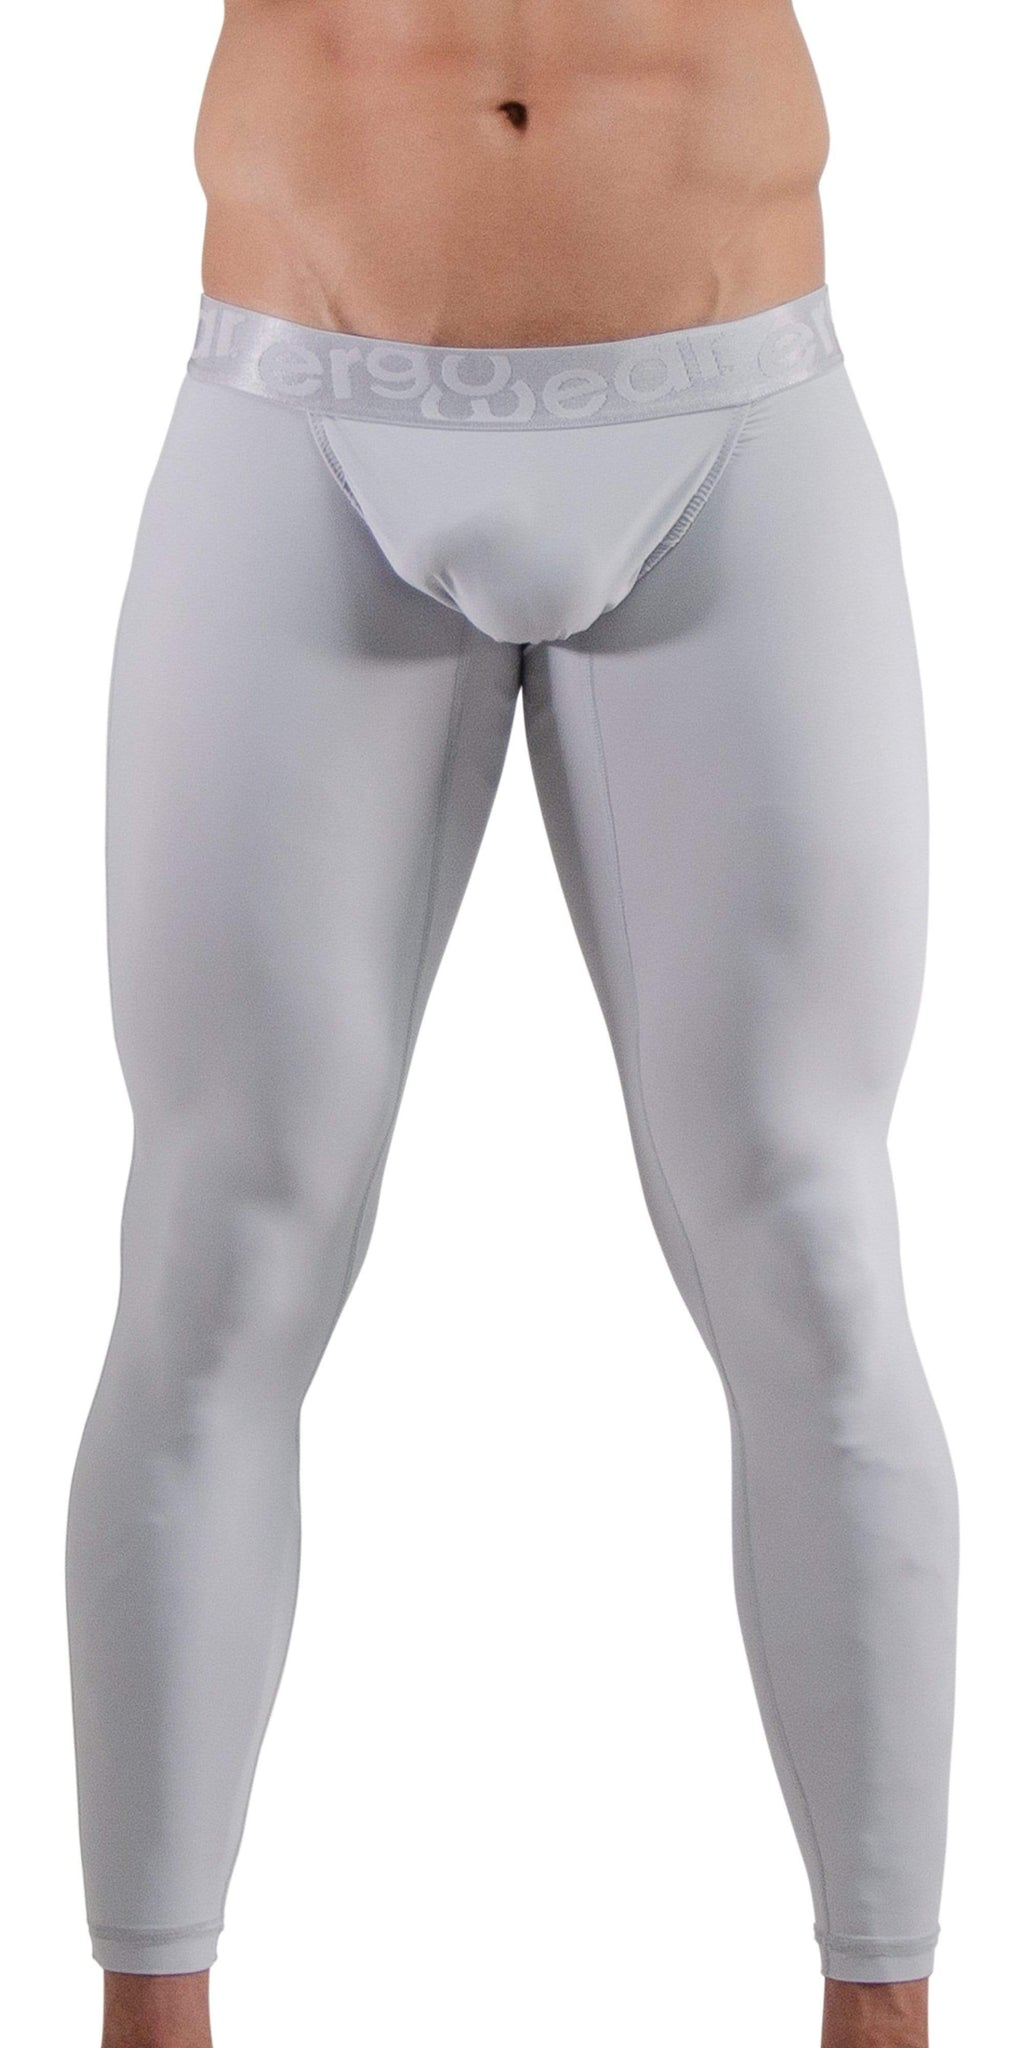 ERGOWEAR FEEL XV Long Johns In Silver